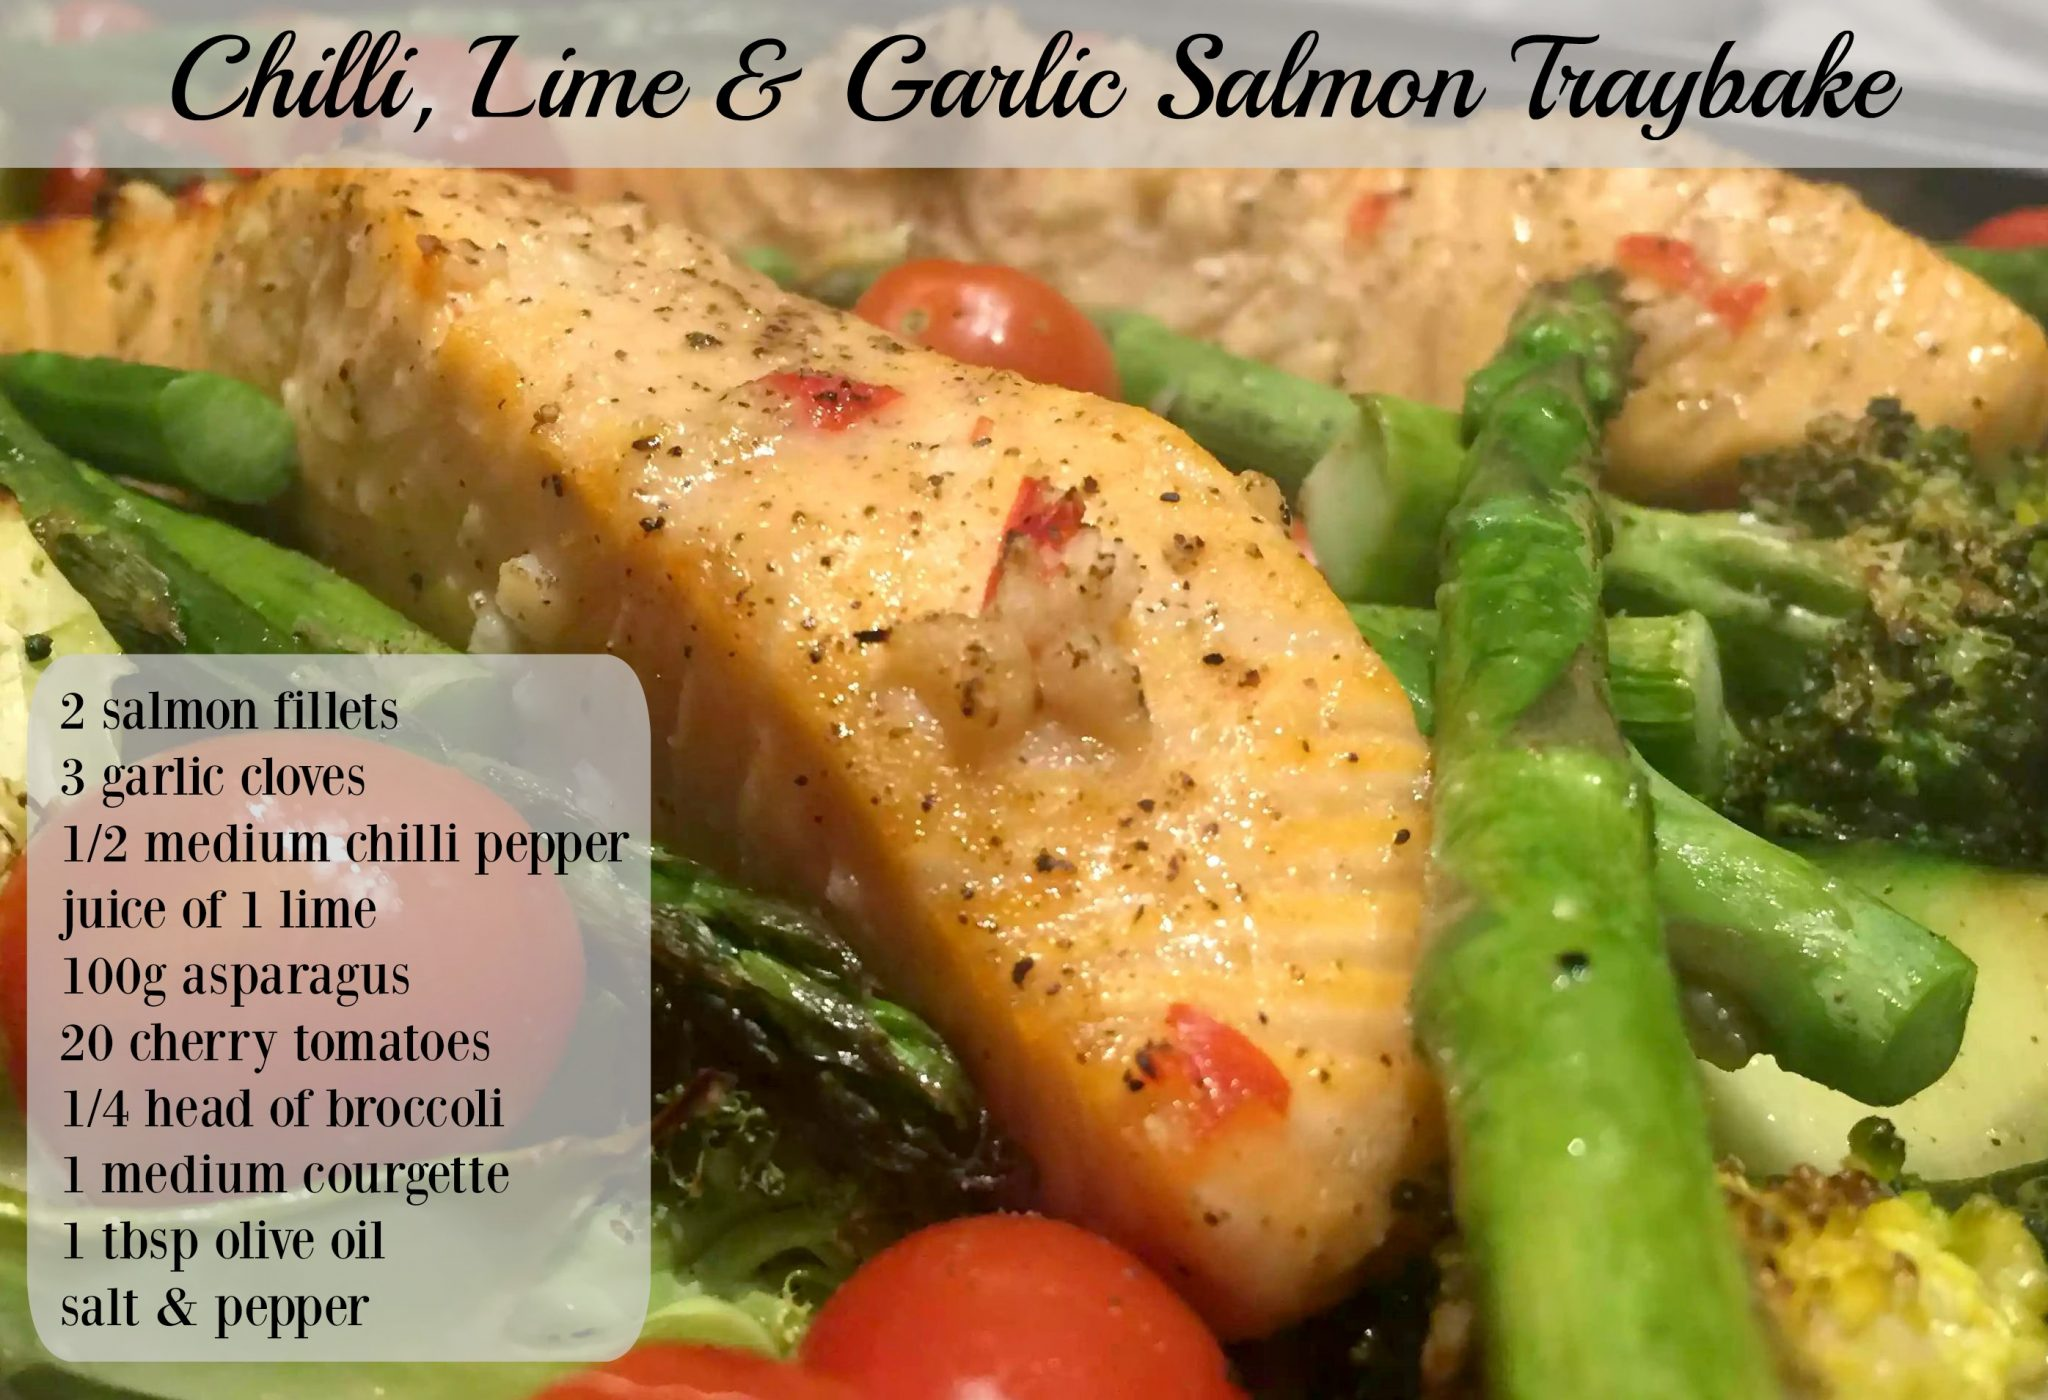 Chilli, Lime & Garlic Salmon Traybake by Emma Eats & Explores - SCD, Paleo, Grainfree, Glutenfree, Sugarfree, Dairyfree, Pescatarian